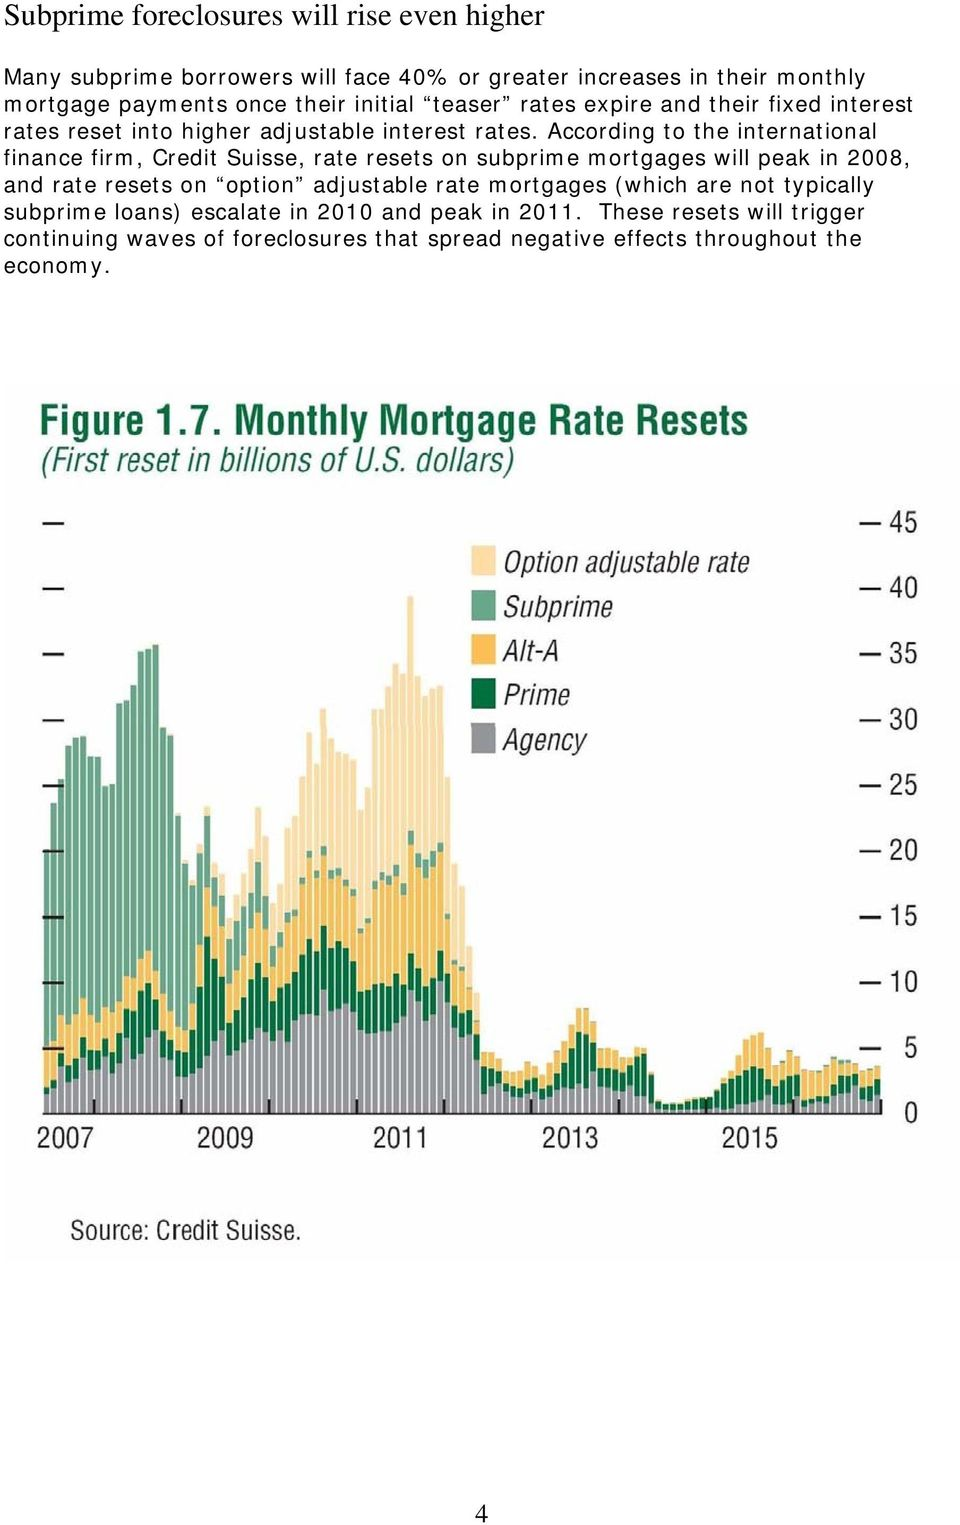 According to the international finance firm, Credit Suisse, rate resets on subprime mortgages will peak in 2008, and rate resets on option adjustable